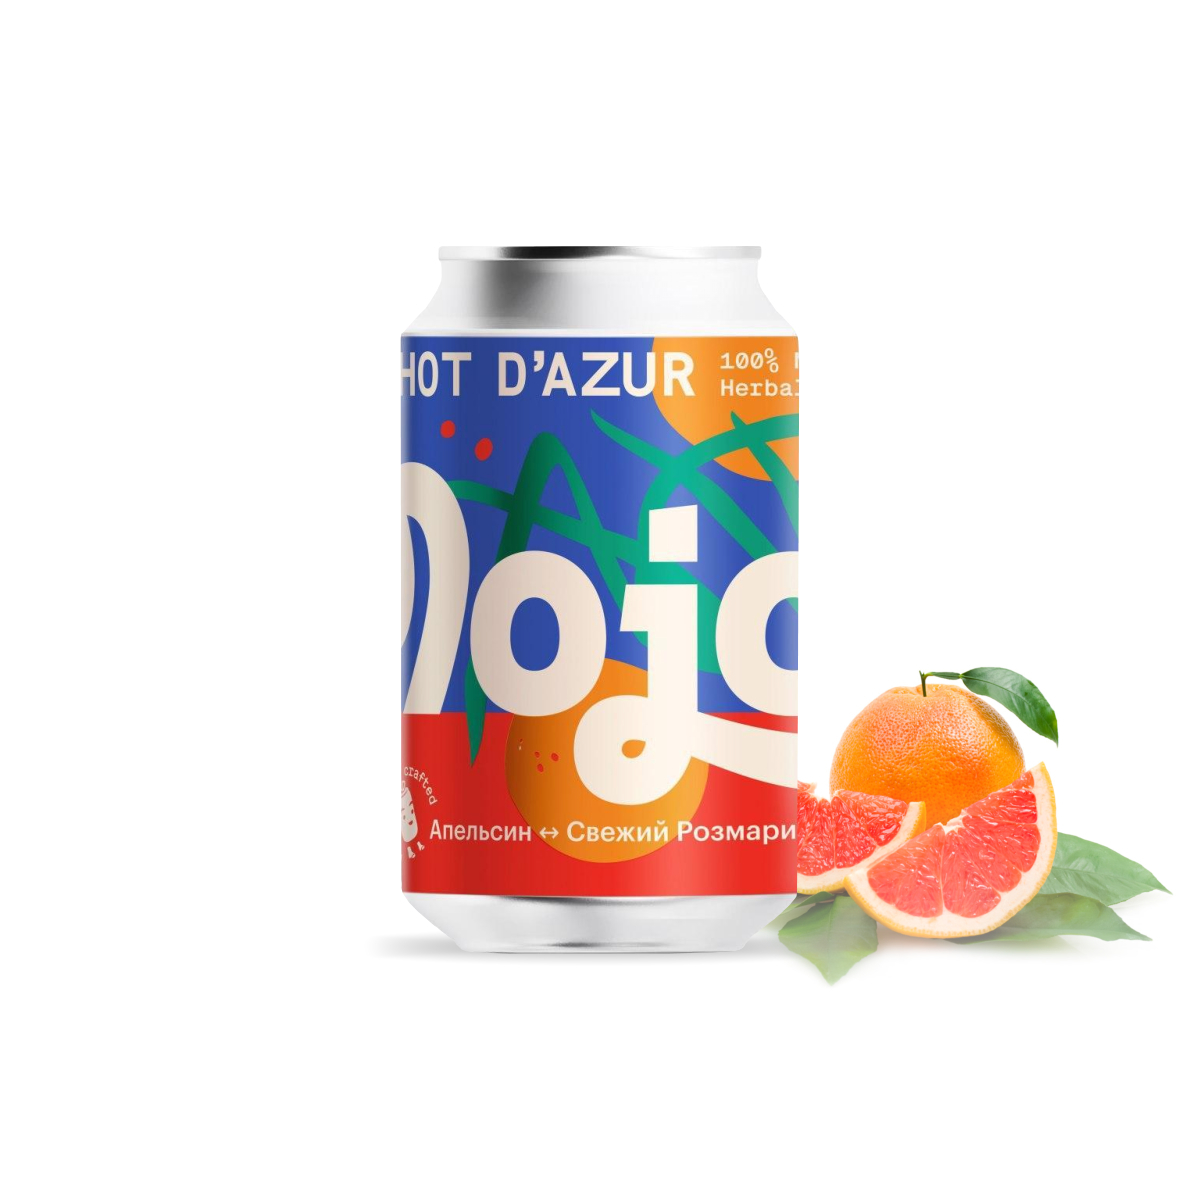 https://static-sl.insales.ru/images/products/1/2143/315189343/mojo-hot-dazur-can.jpg